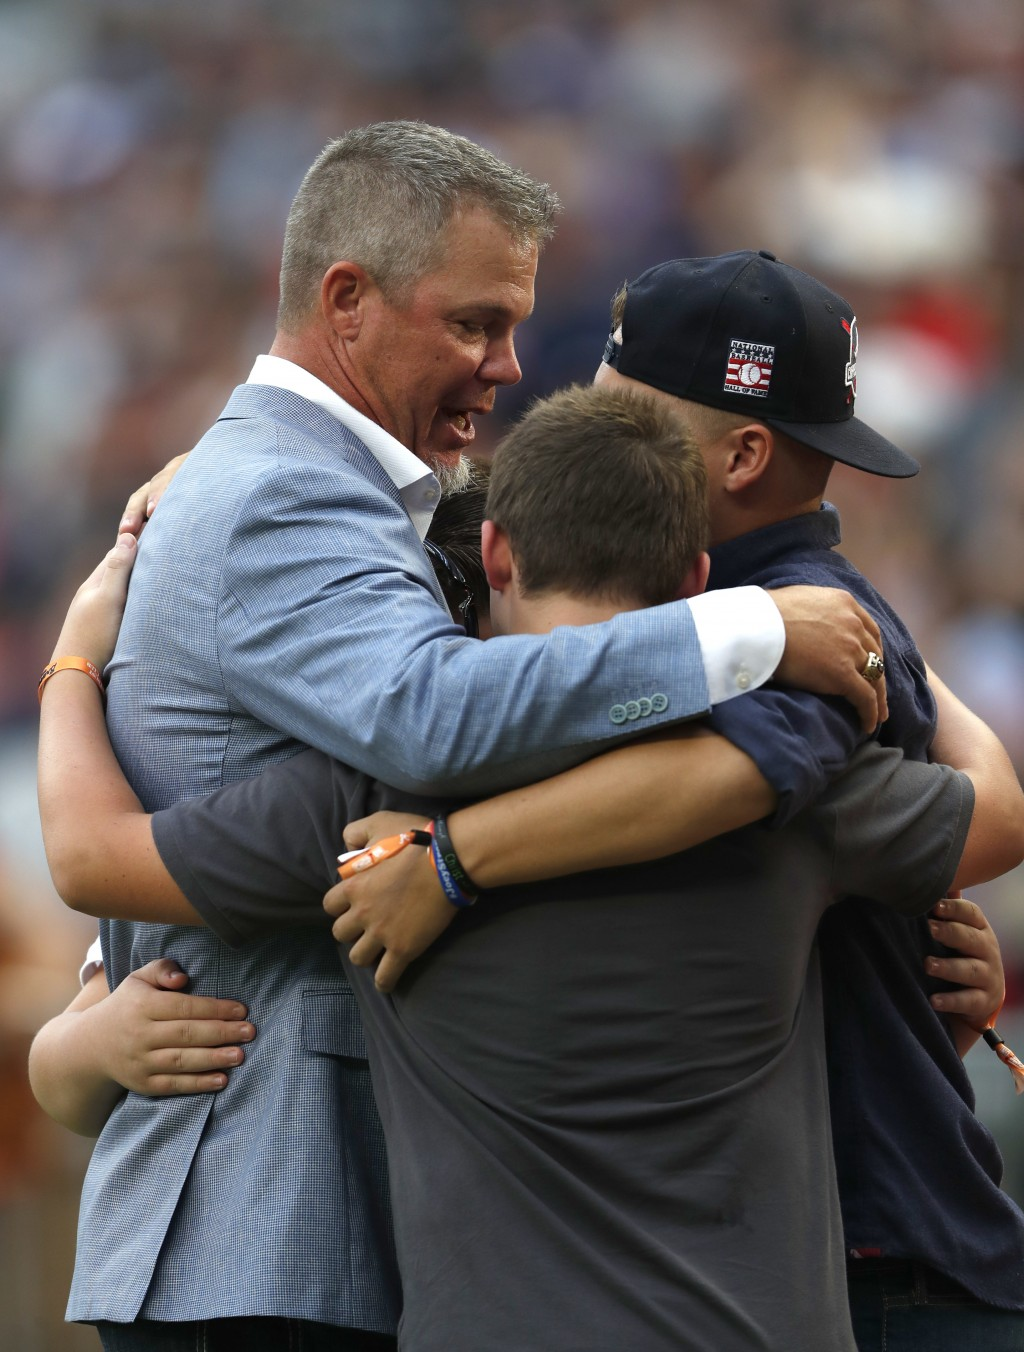 Former Atlanta Braves third baseman and Baseball Hall of Fame member Chipper Jones, left, hugs family members during a ceremony before a baseball game